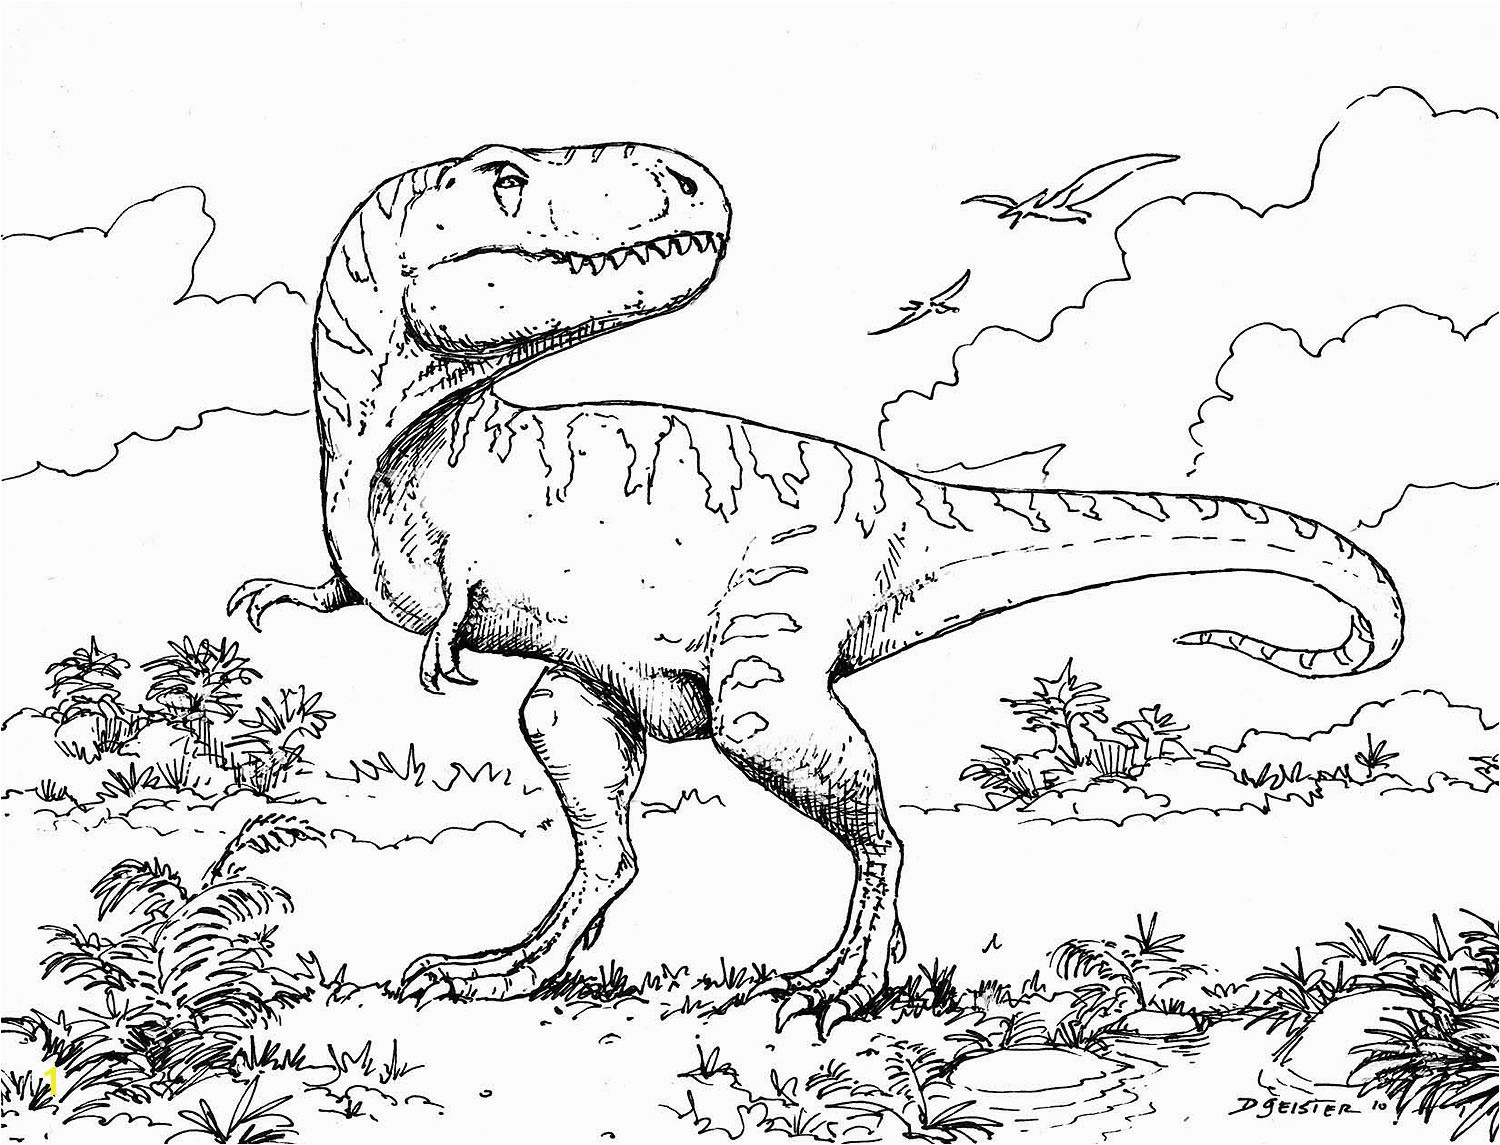 Dinosaur Printable Coloring Pages Dinosaur Coloring Pages Kids Free Free Dinosaur Coloring Pages 4